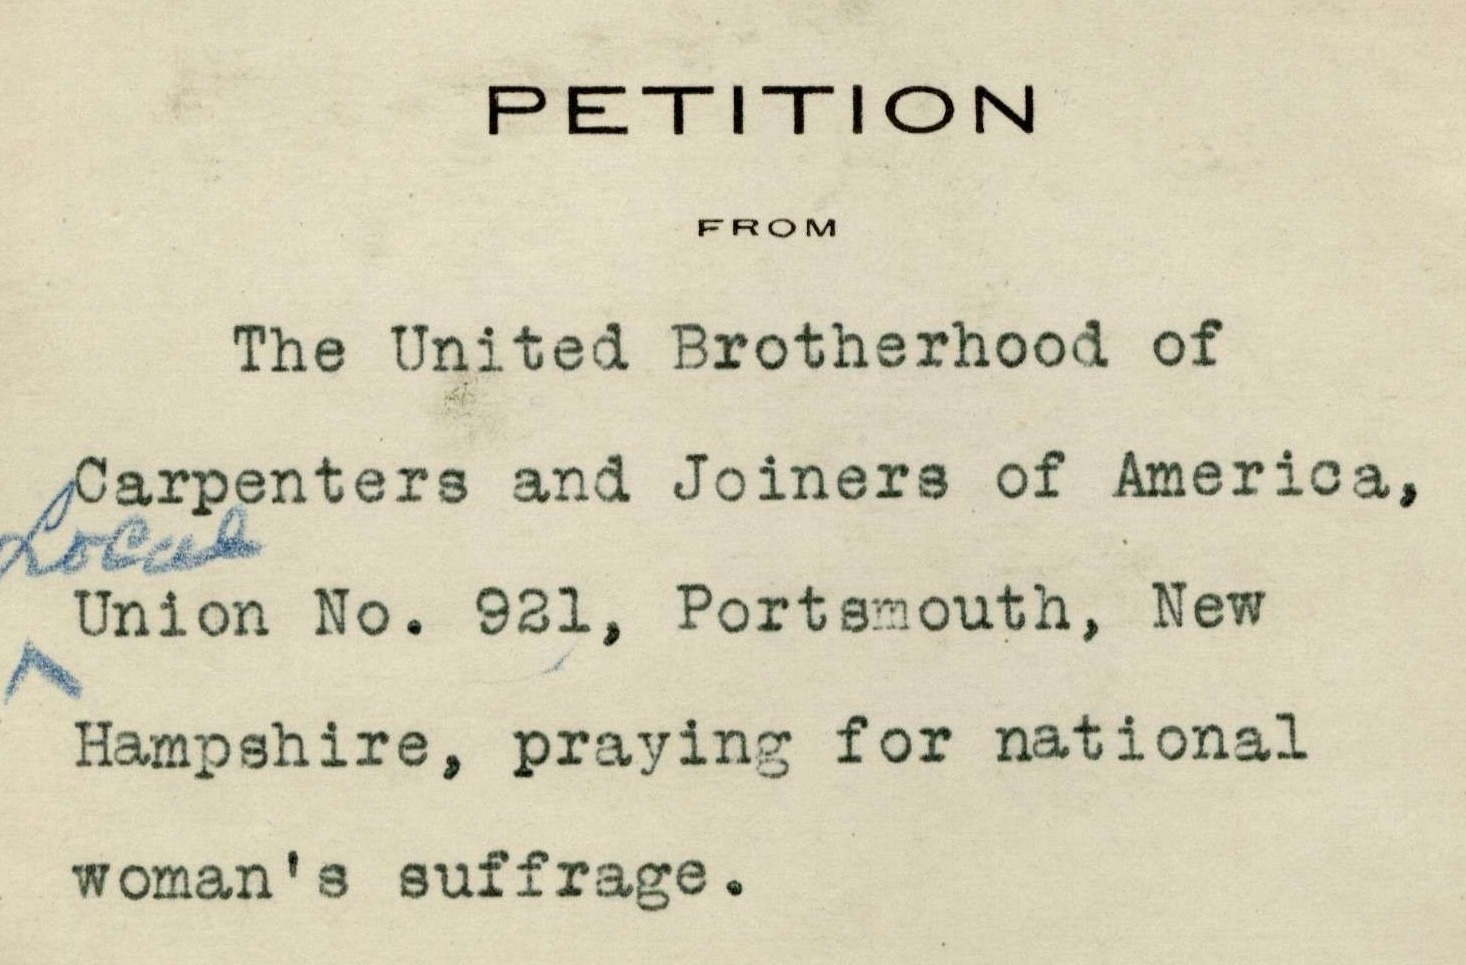 Petition from the United Brotherhood of Carpenters and Joiners of America for National Woman